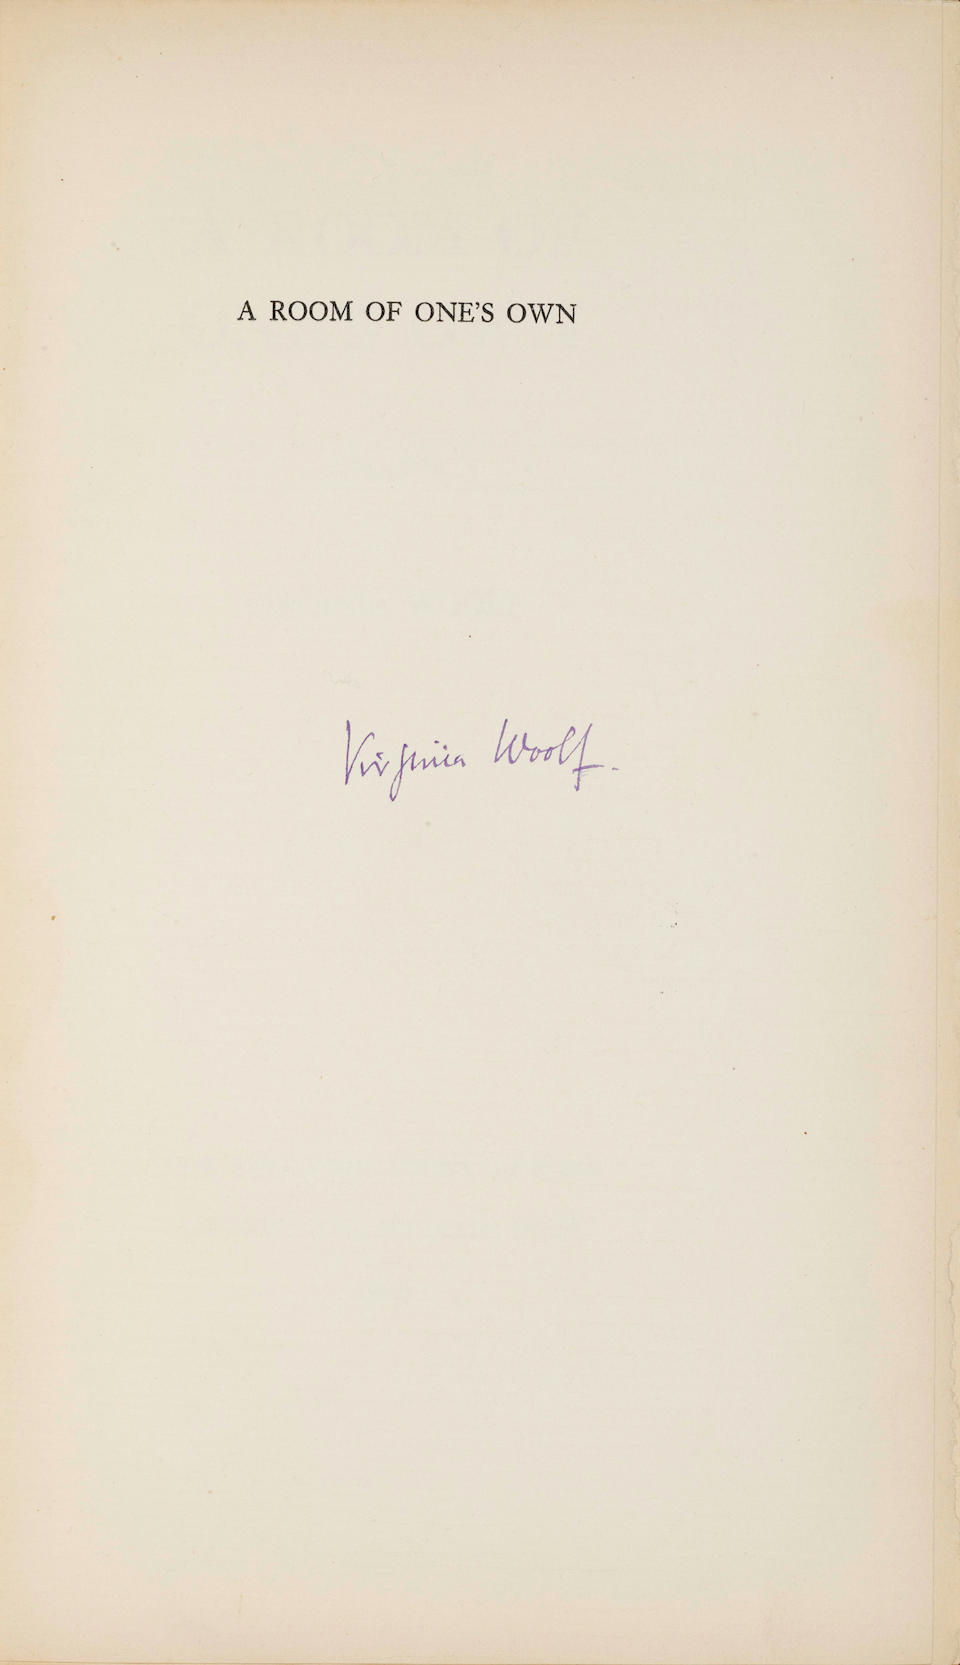 WOOLF, VIRGINIA. 1882-1941. A Room of One's Own. New York, The Fountain Press; London, The Hogarth Press, 1929.